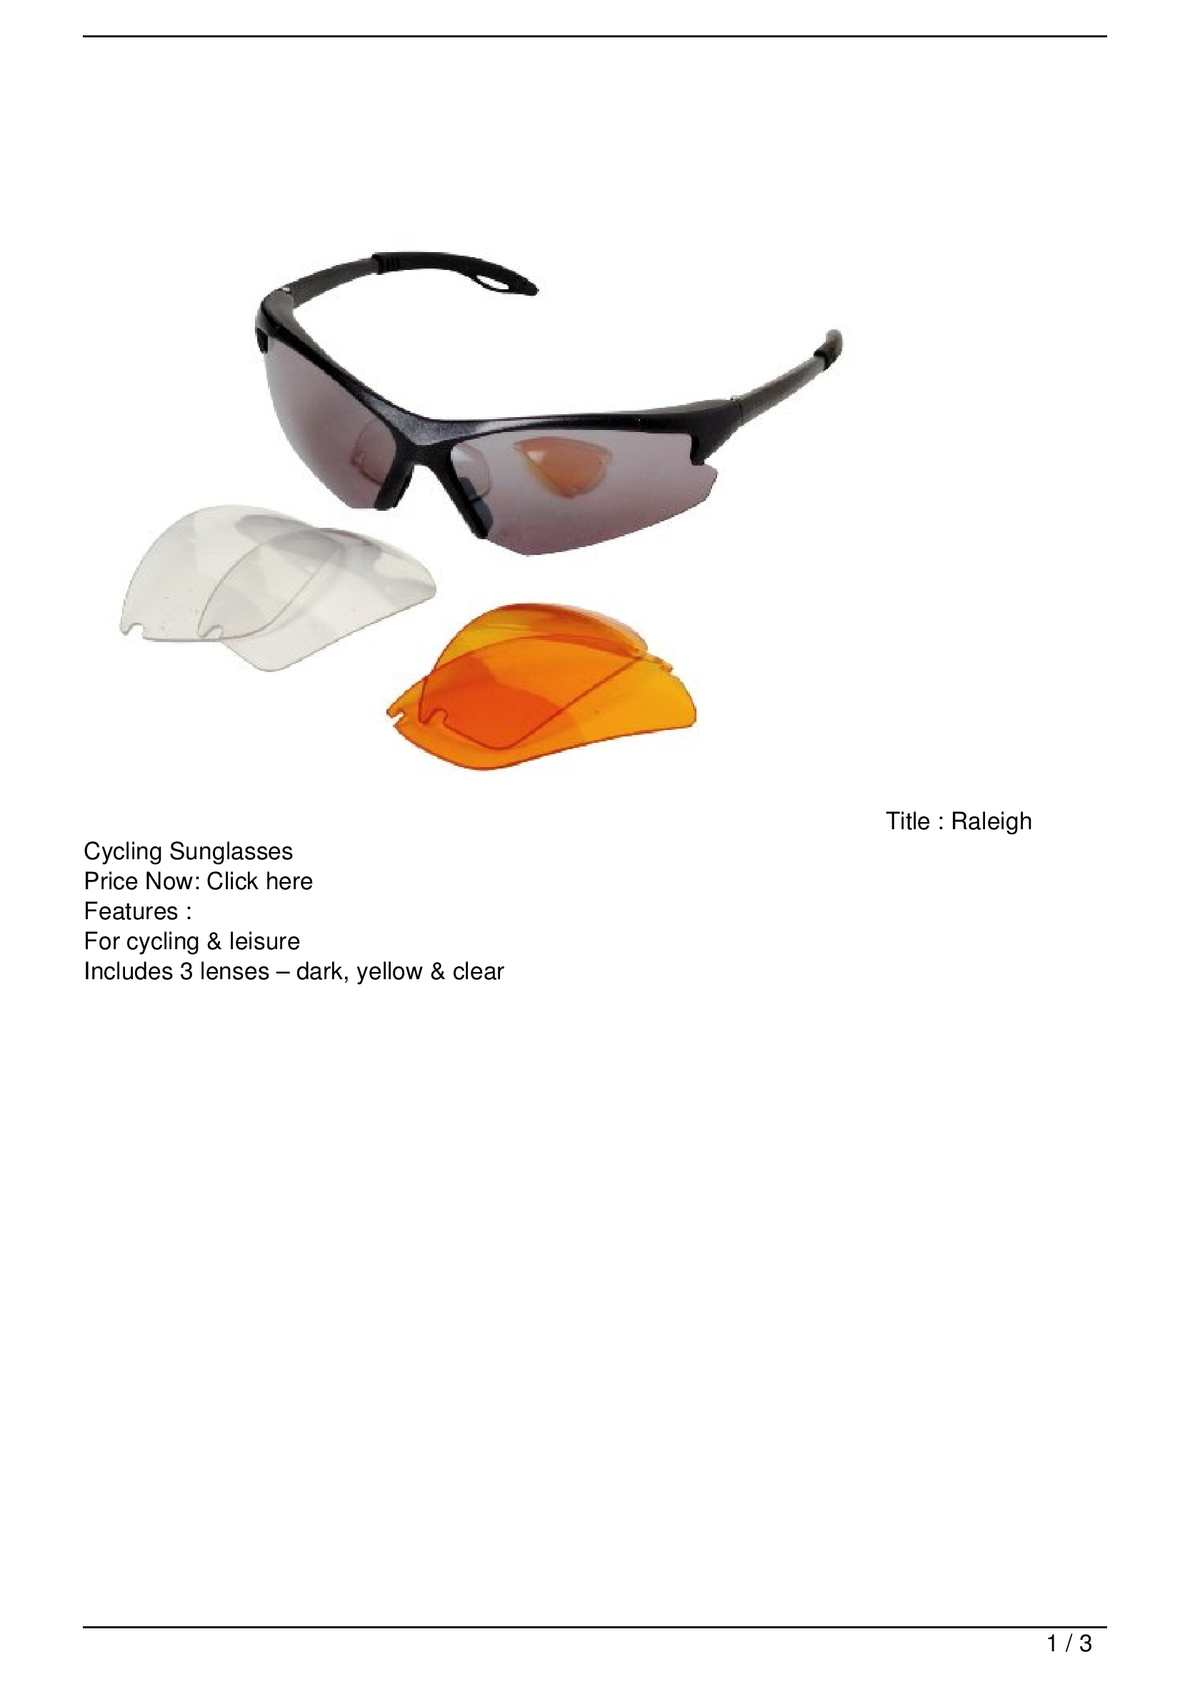 8a7c225fd5 Calaméo - Raleigh Cycling Sunglasses Discount !!